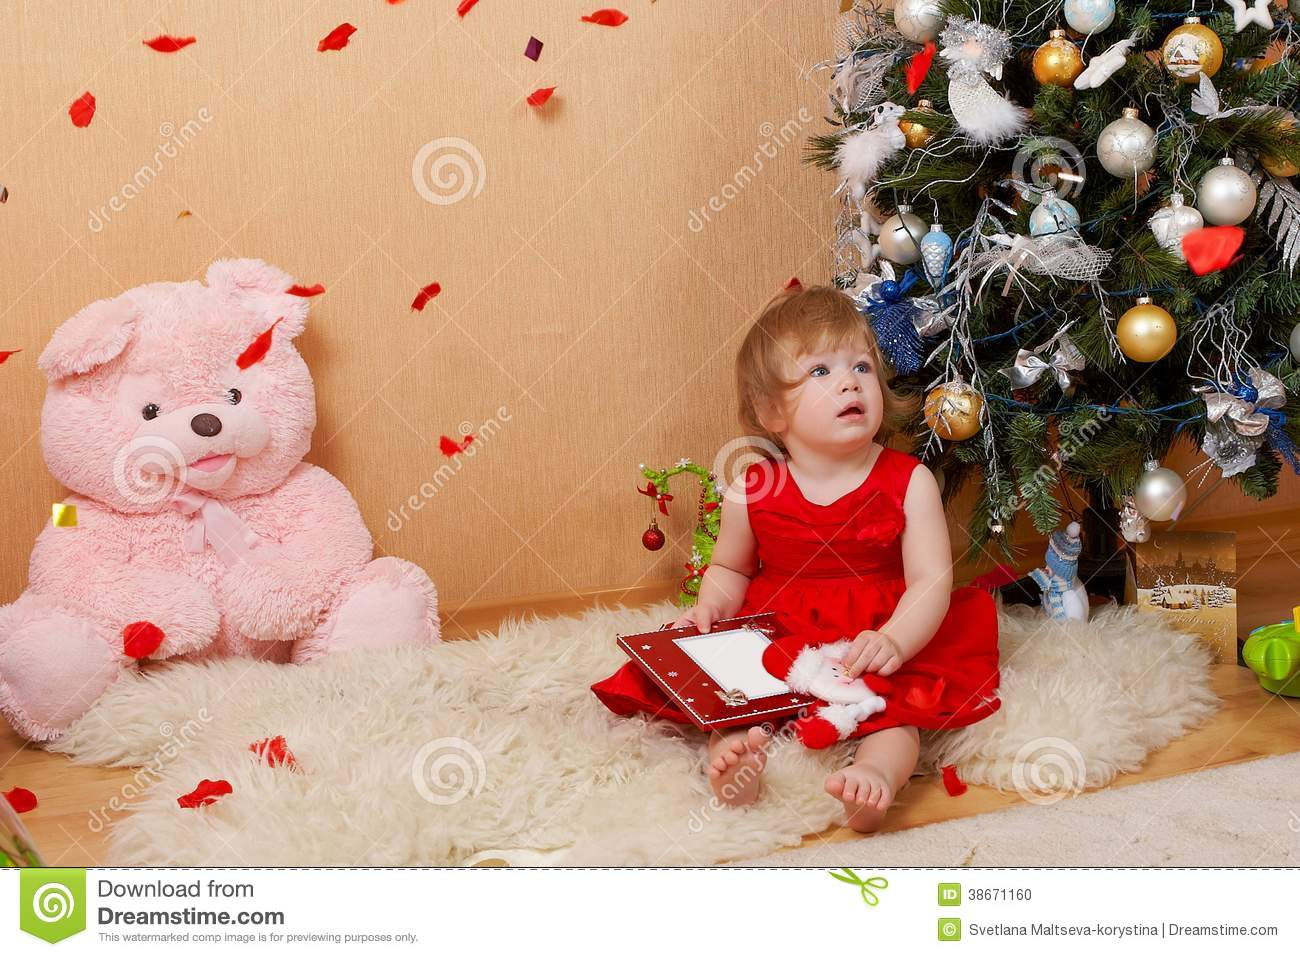 c6510eae0d1c Cute girl in red dress stock photo. Image of dress